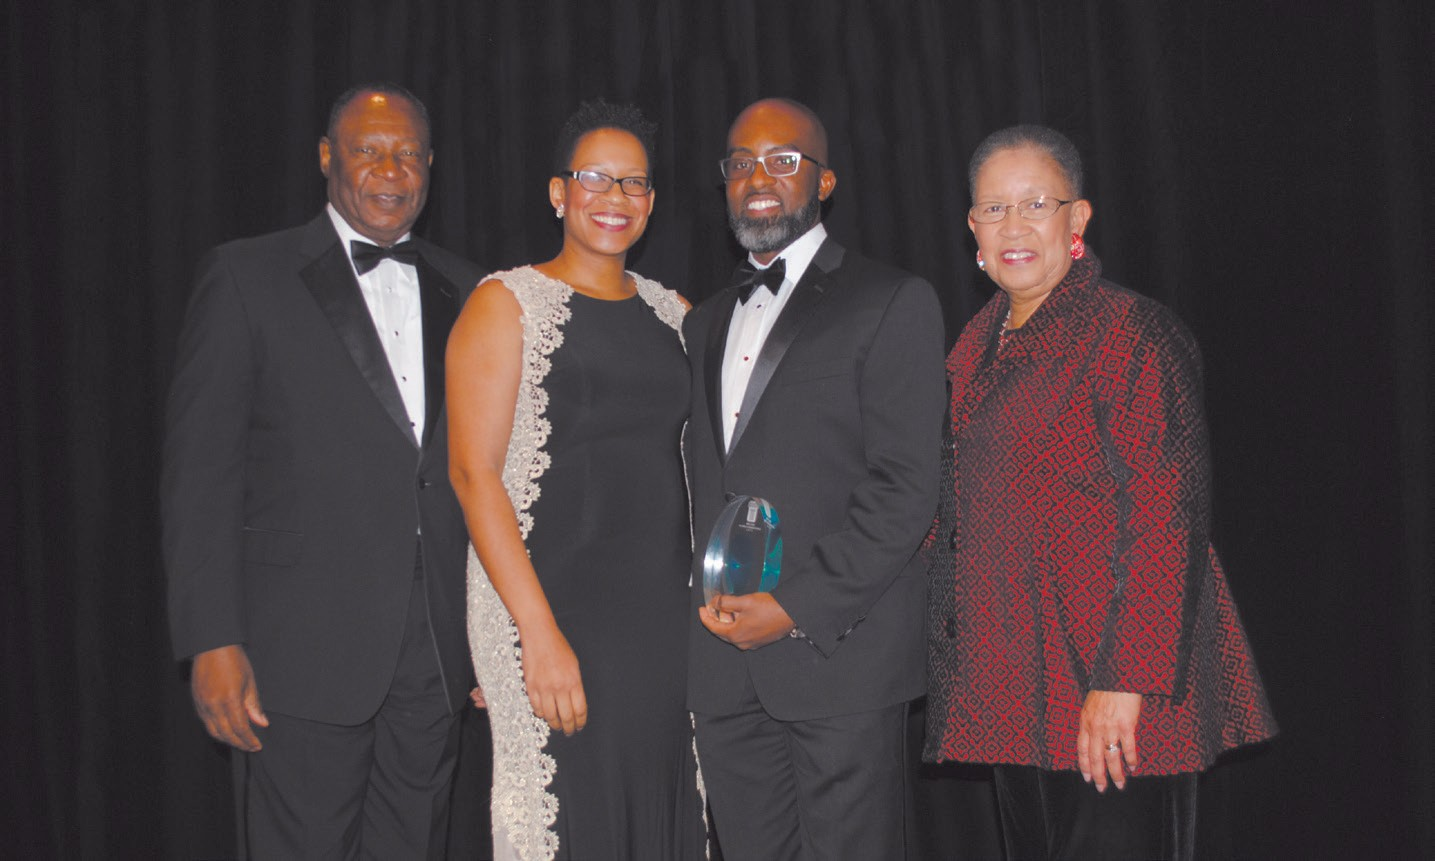 Left to right: Robert James, Rachelle James Gregory, Dr. Frederick Gregory and Shirley B. James